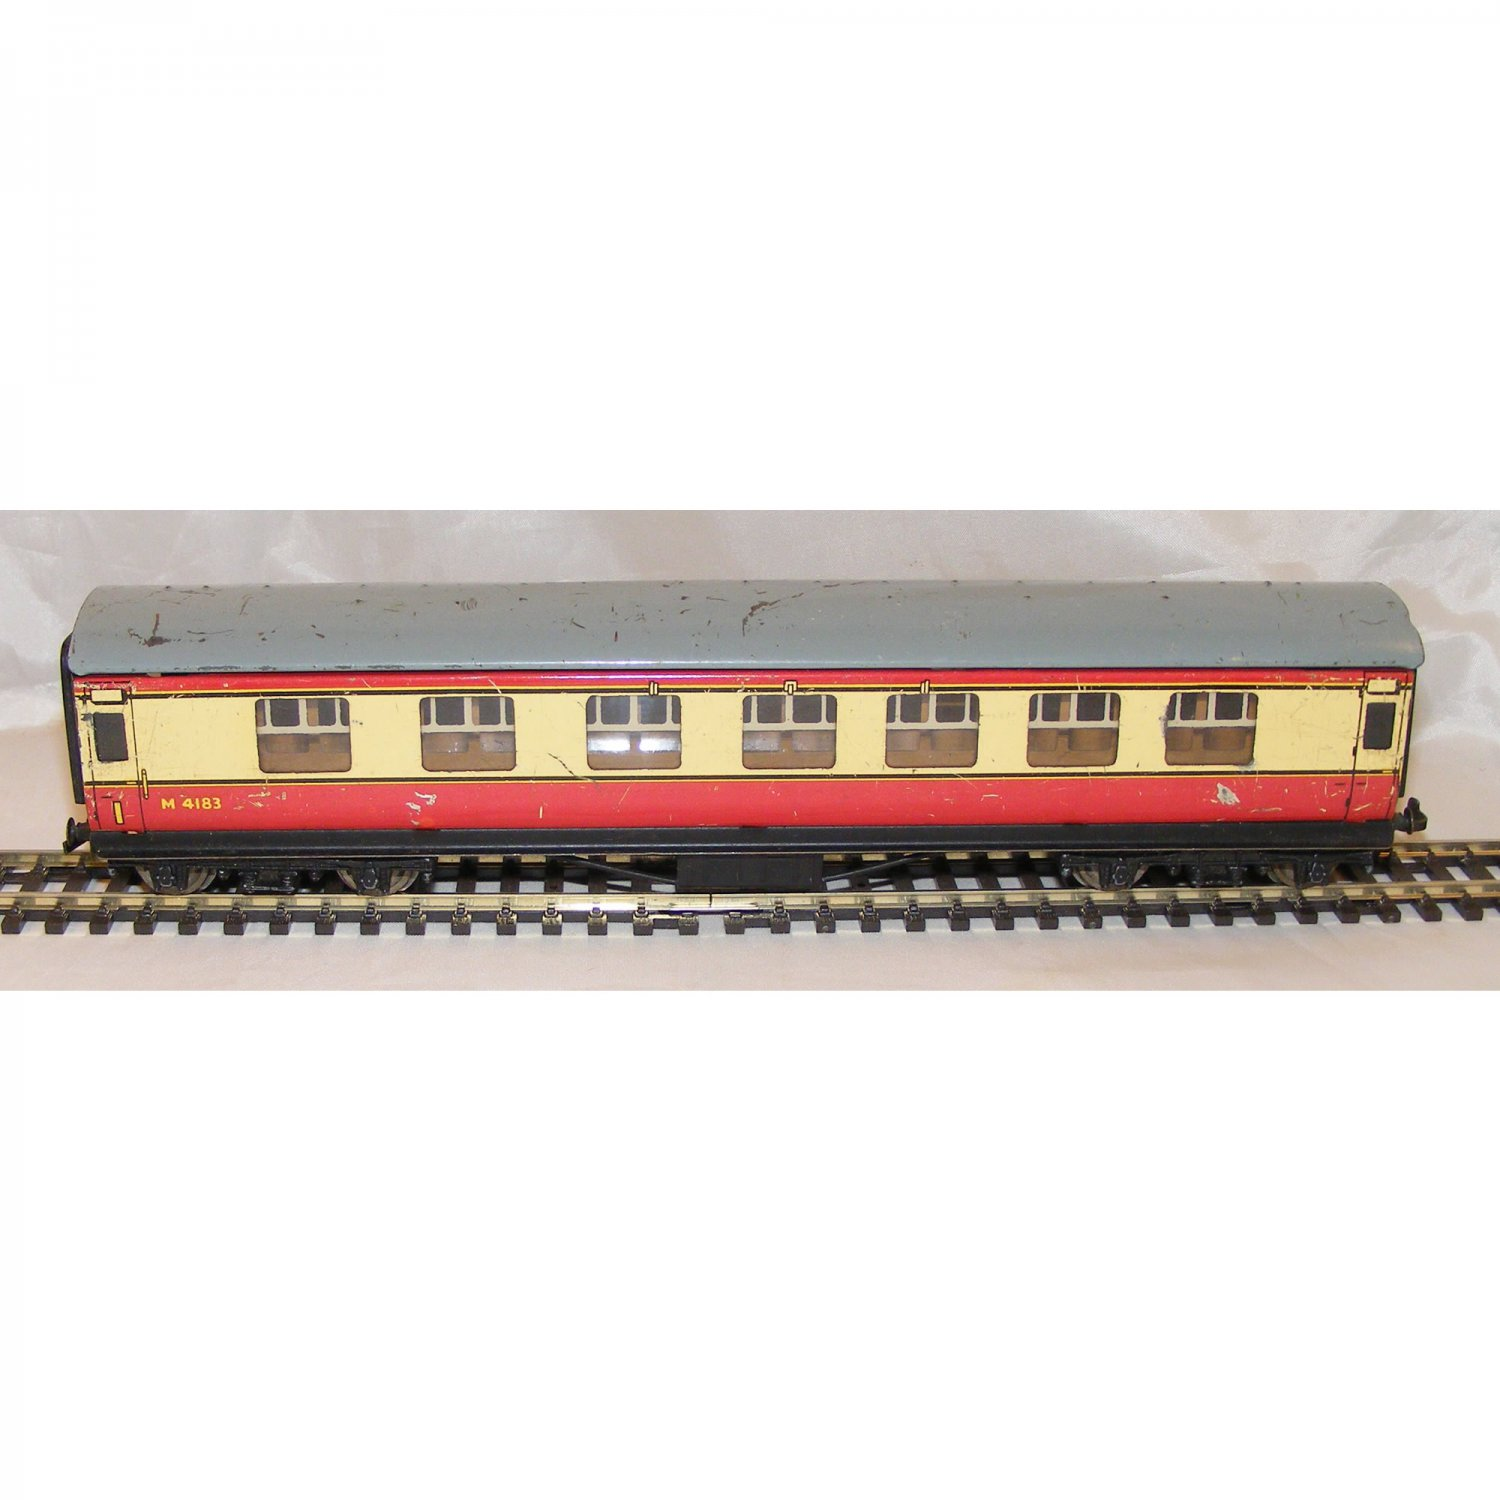 Vintage Tinplate British Railway Carriage in Red and Cream